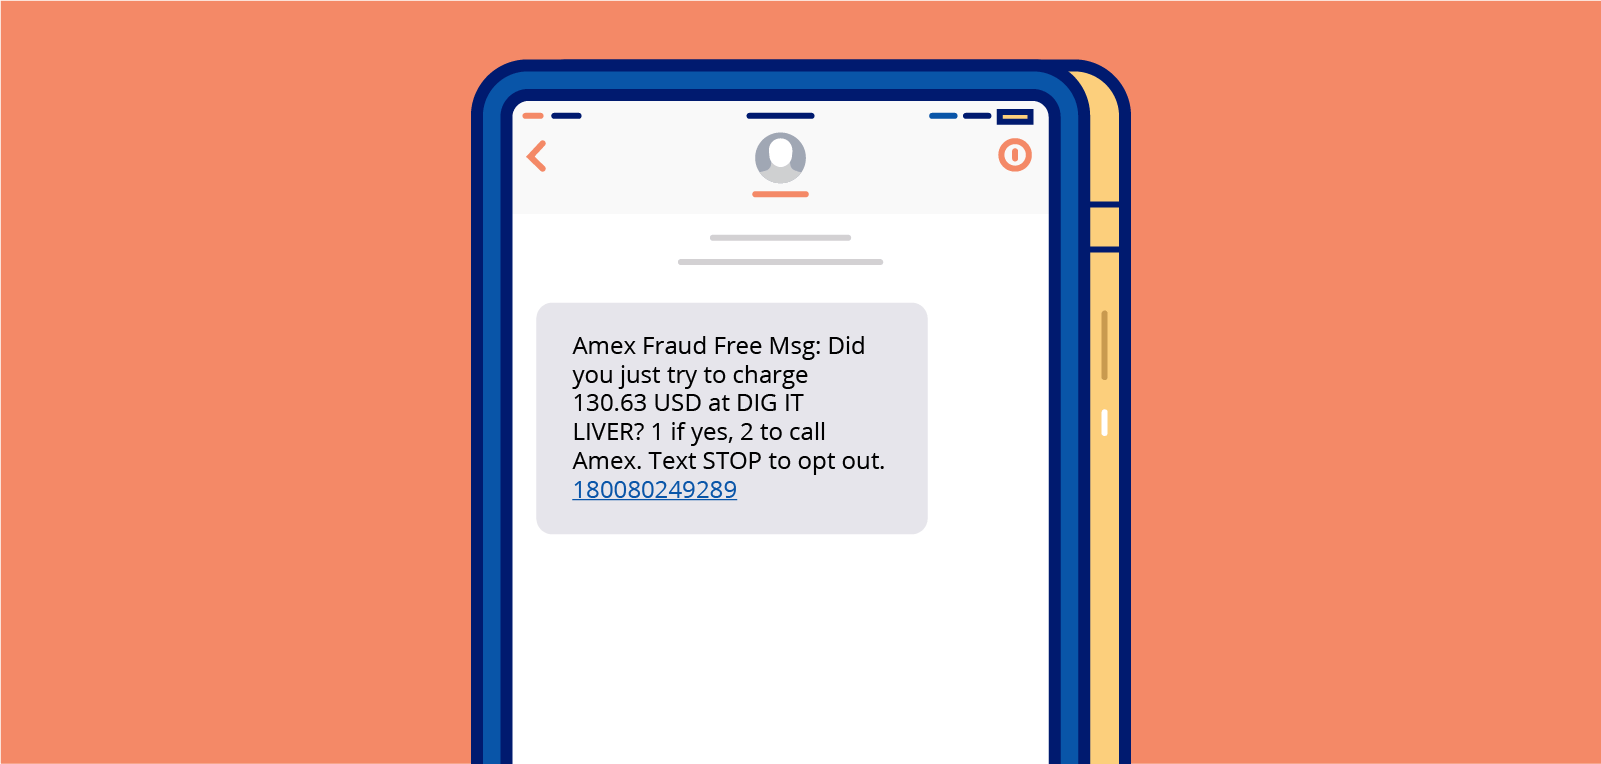 trigger sms campaign example of a fraud alert text from American Express